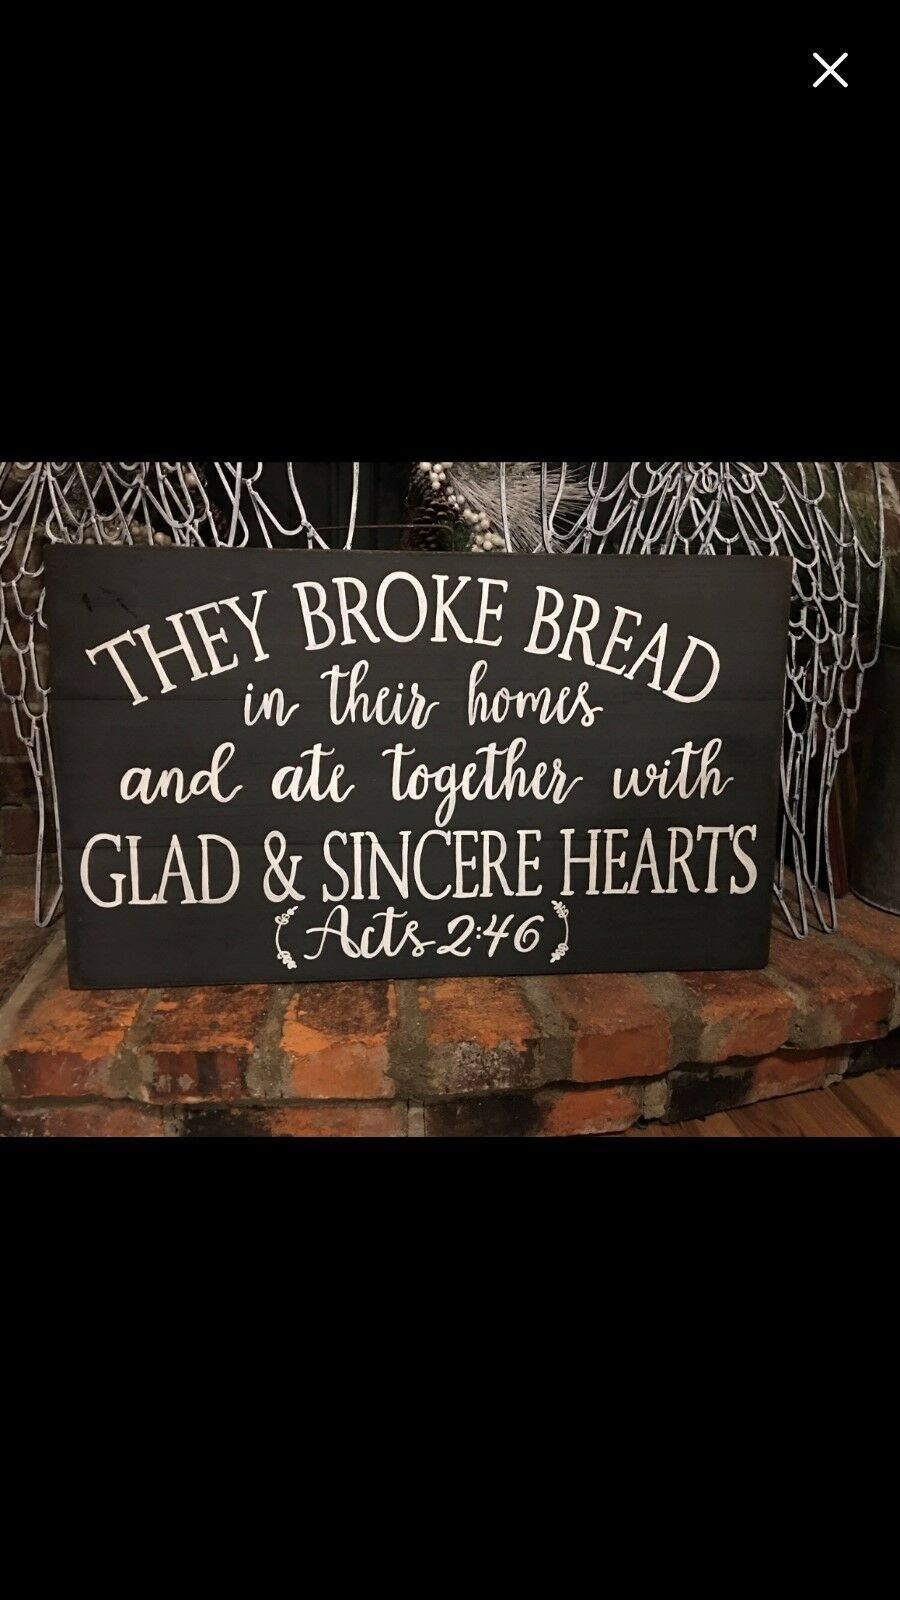 The broke bread, Acts 2 46, hand painted pallet wood barn wood